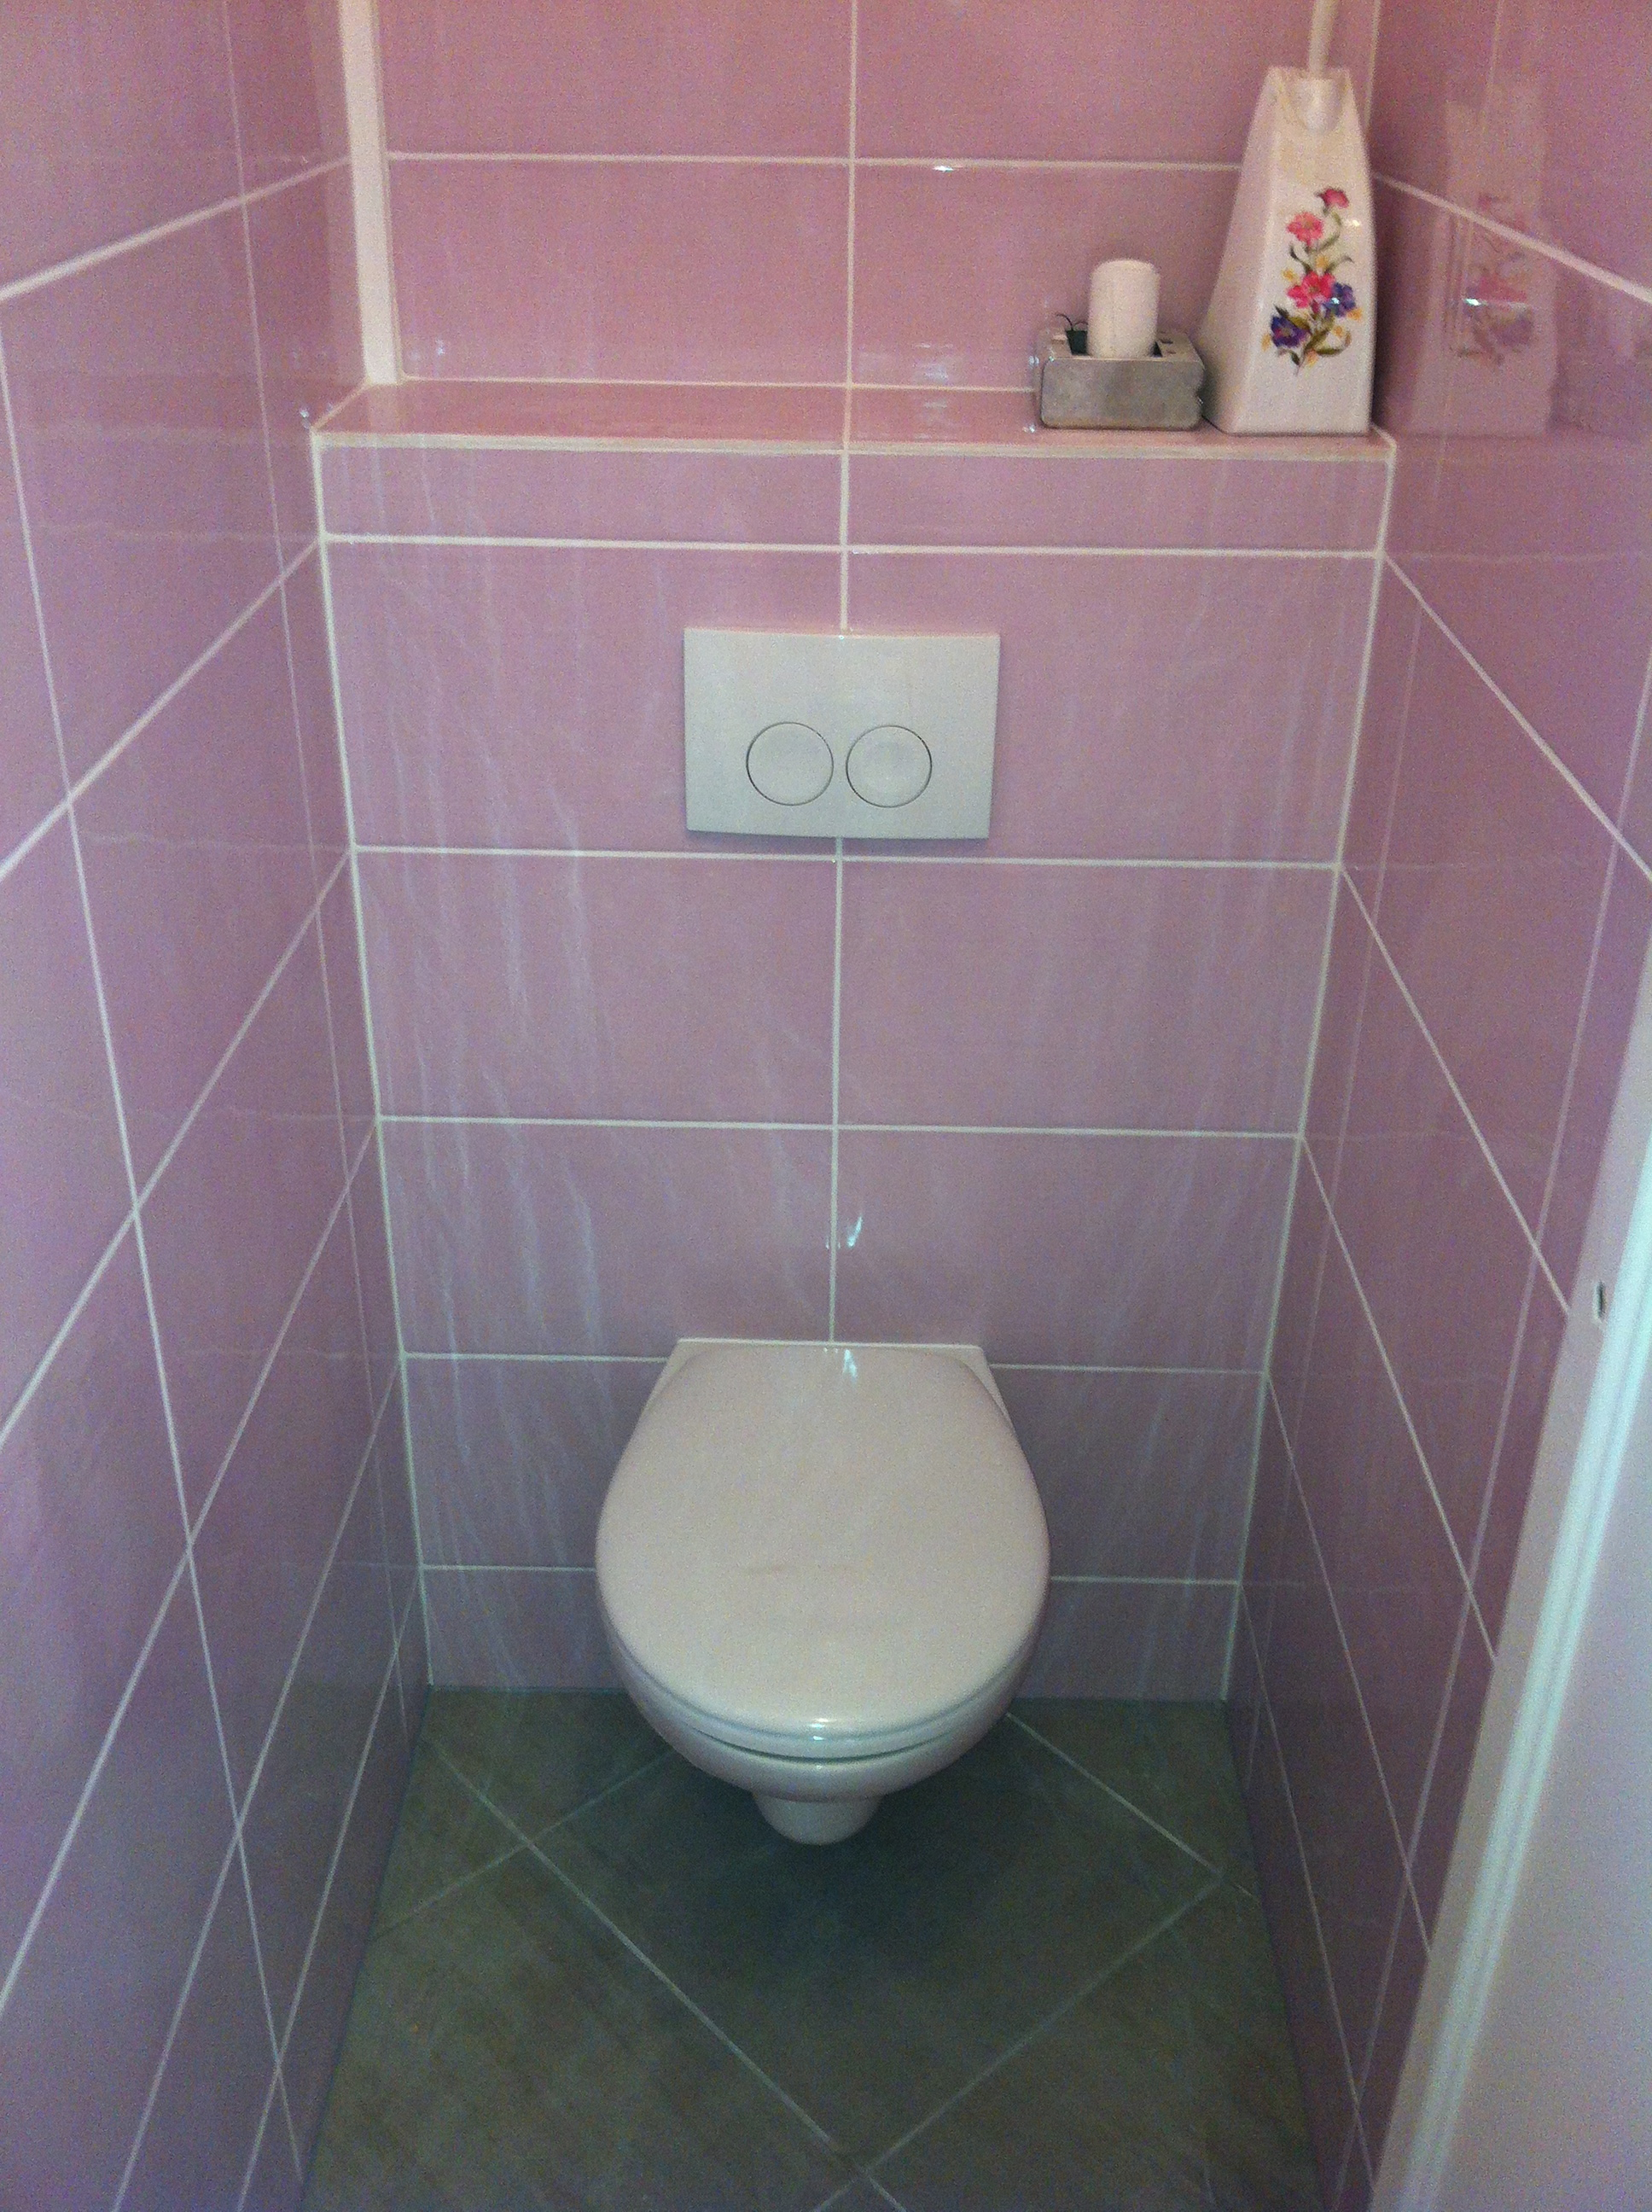 Wc suspendu wc encastr dream house for Carrelage de wc